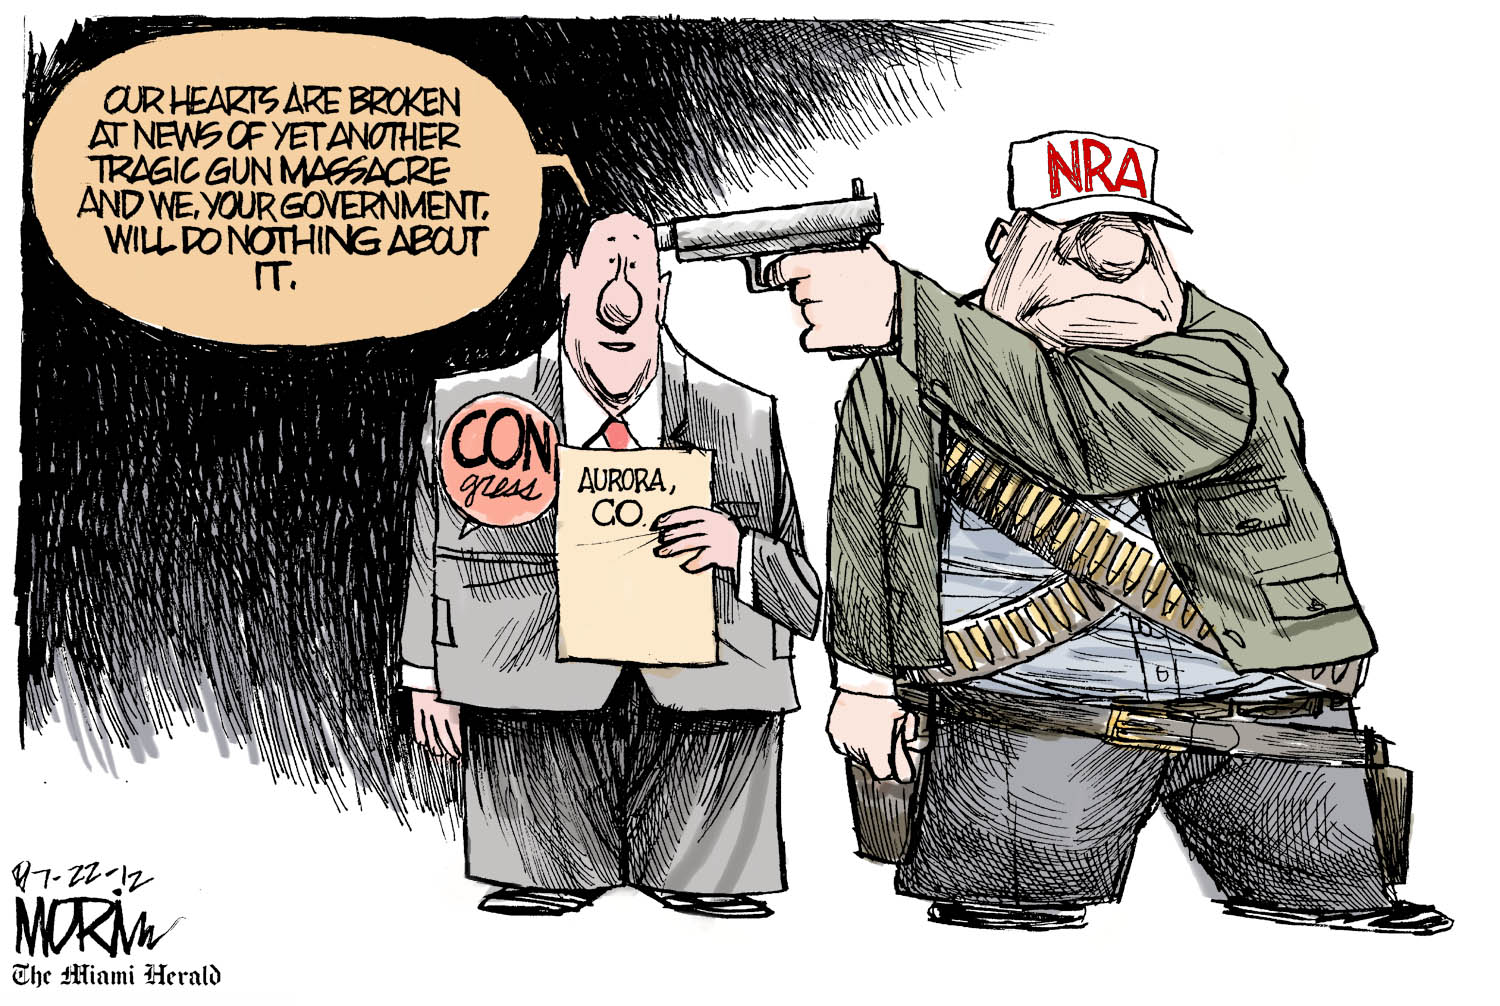 National Rifle Association in the USA and mass shootings, cartoon